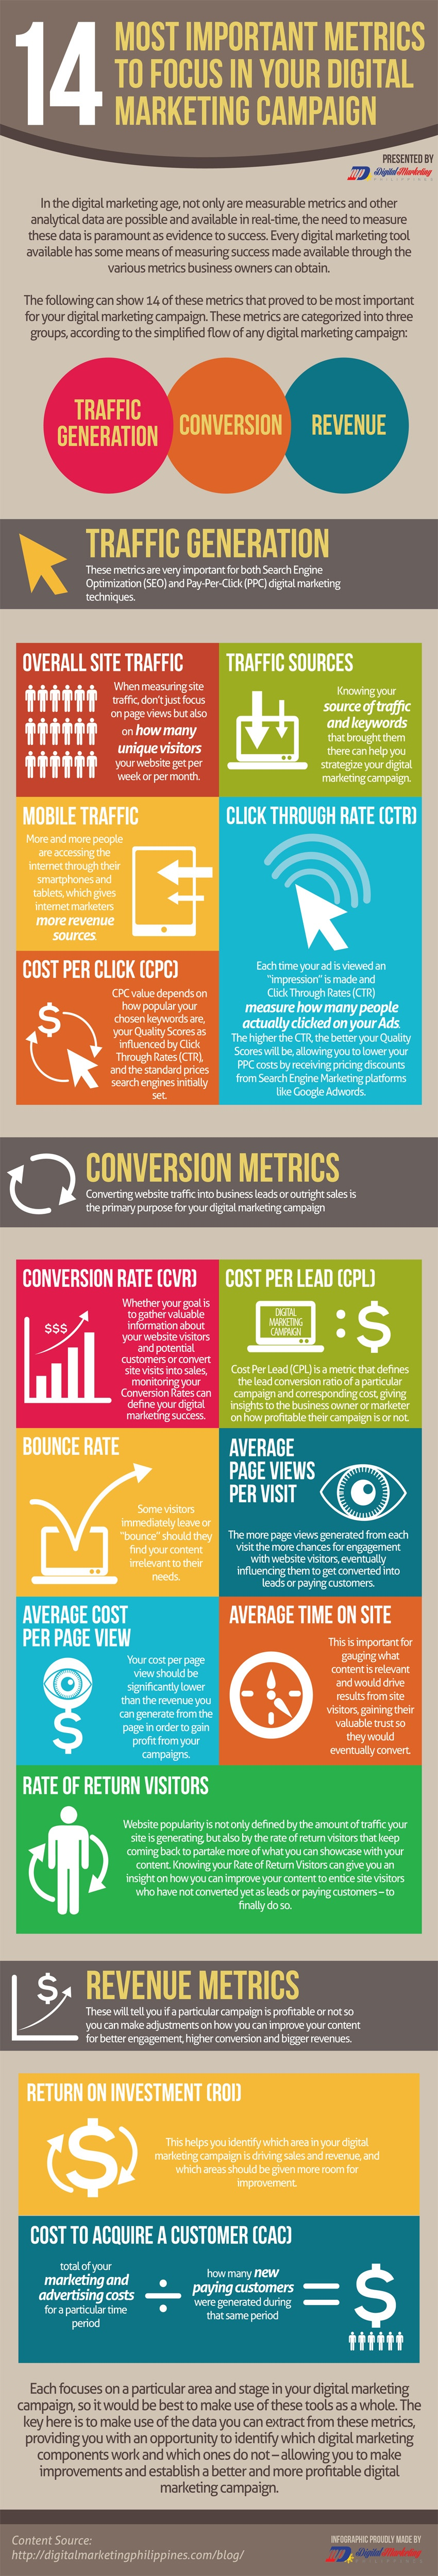 14-Most-Important-Metrics-to-Focus-in-Your-Digital-Marketing-Campaign.jpg